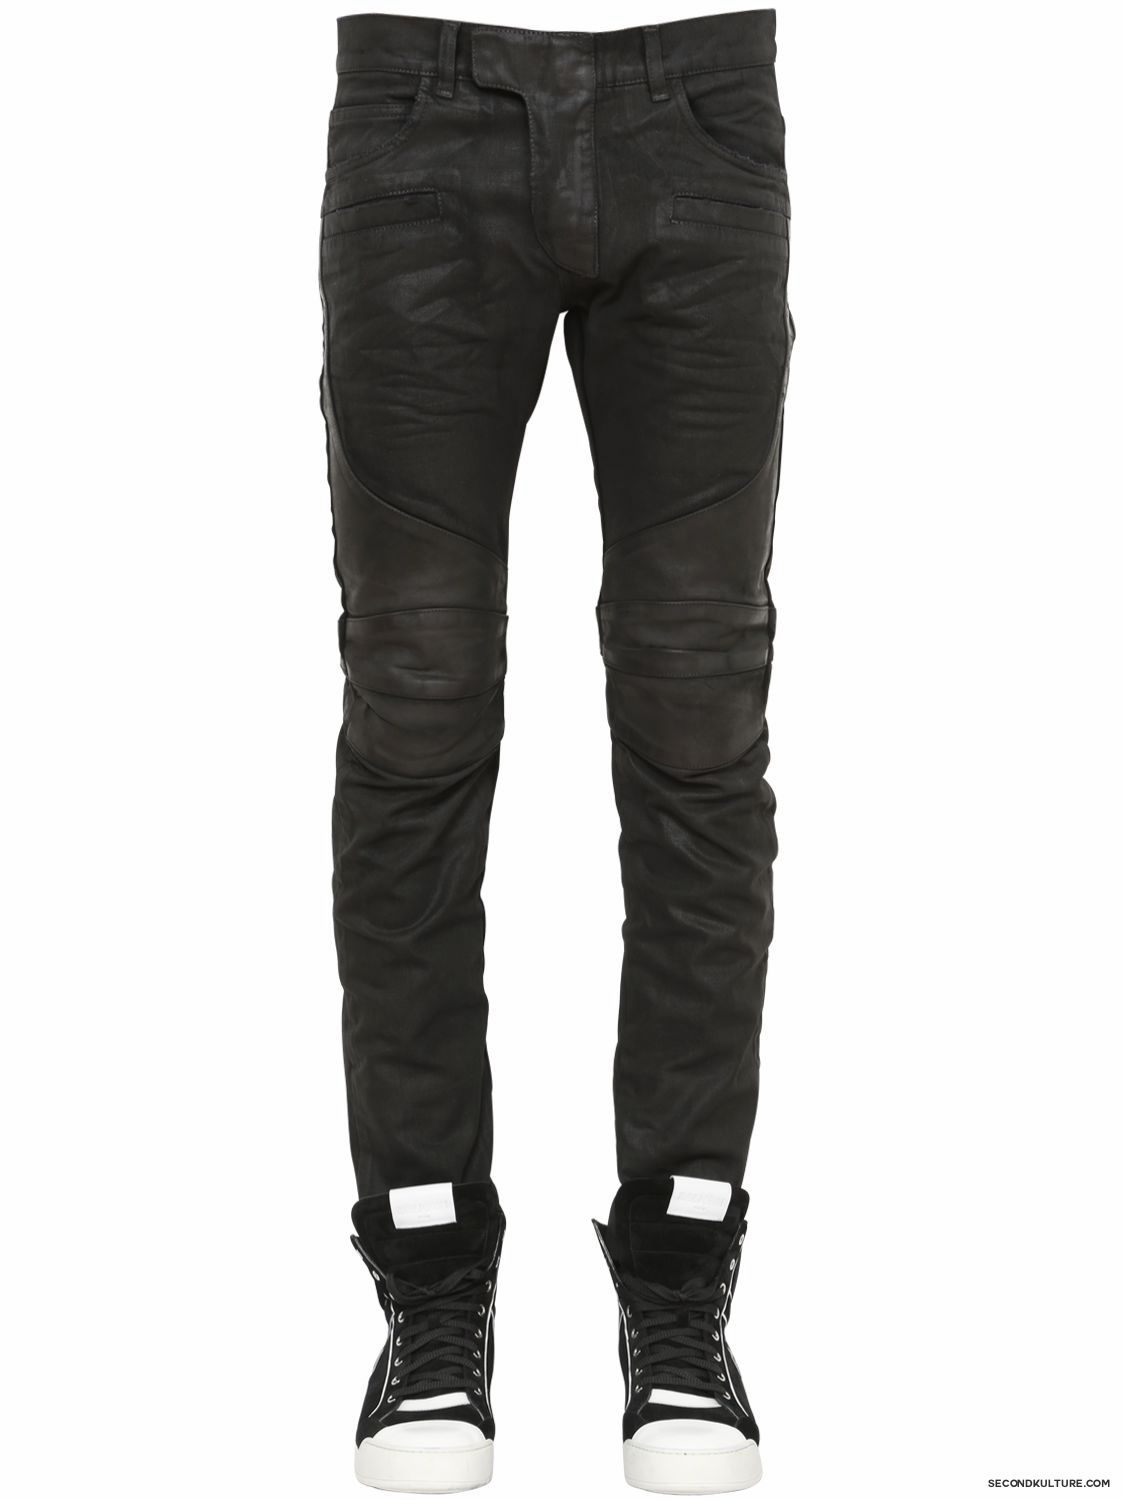 Balmain-17cm-Black-Waxed-Coated-Denim-Biker-Jeans-Fall-Winter-2015-1